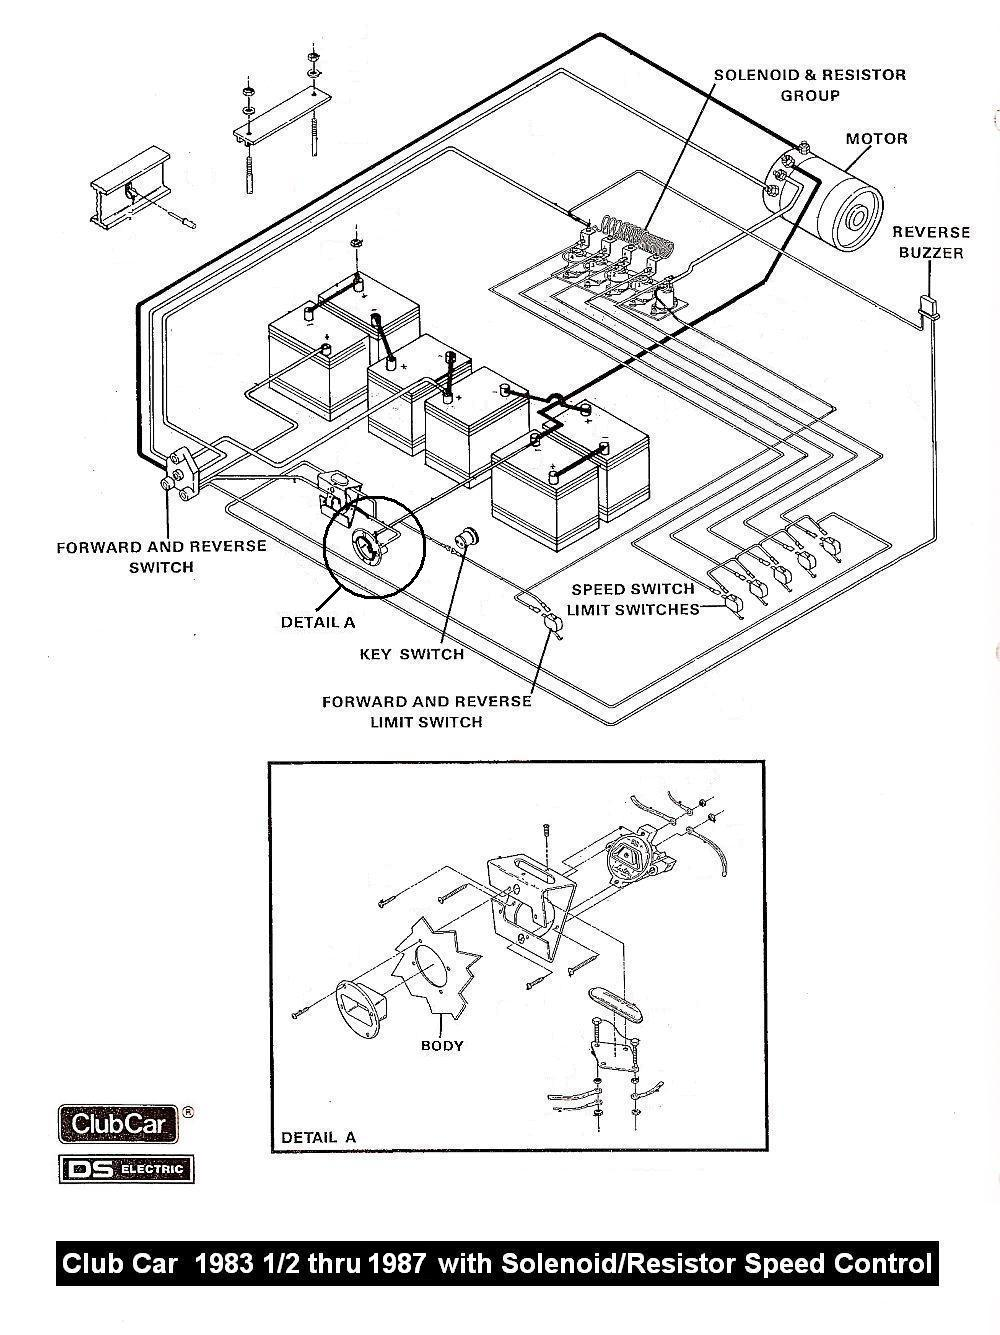 Gem E2 Wiring Diagrams 22 Diagram Images For 2008 Car Cc 83 87 Solenoid Wiringresize6652c888 E825